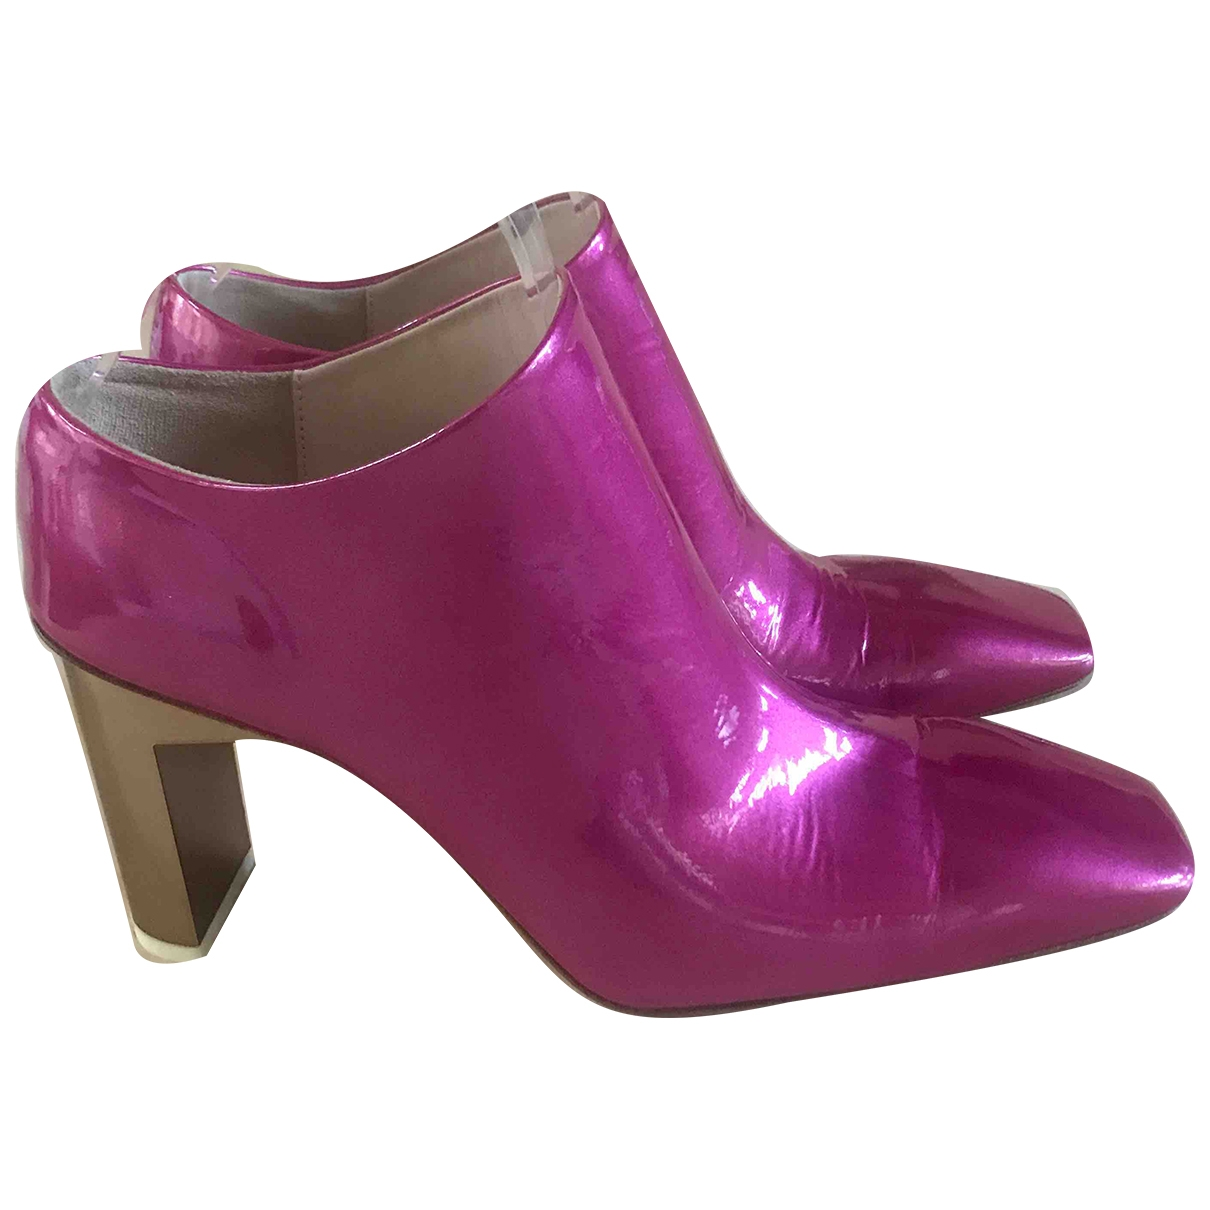 Alyx \N Pink Patent leather Heels for Women 39 IT